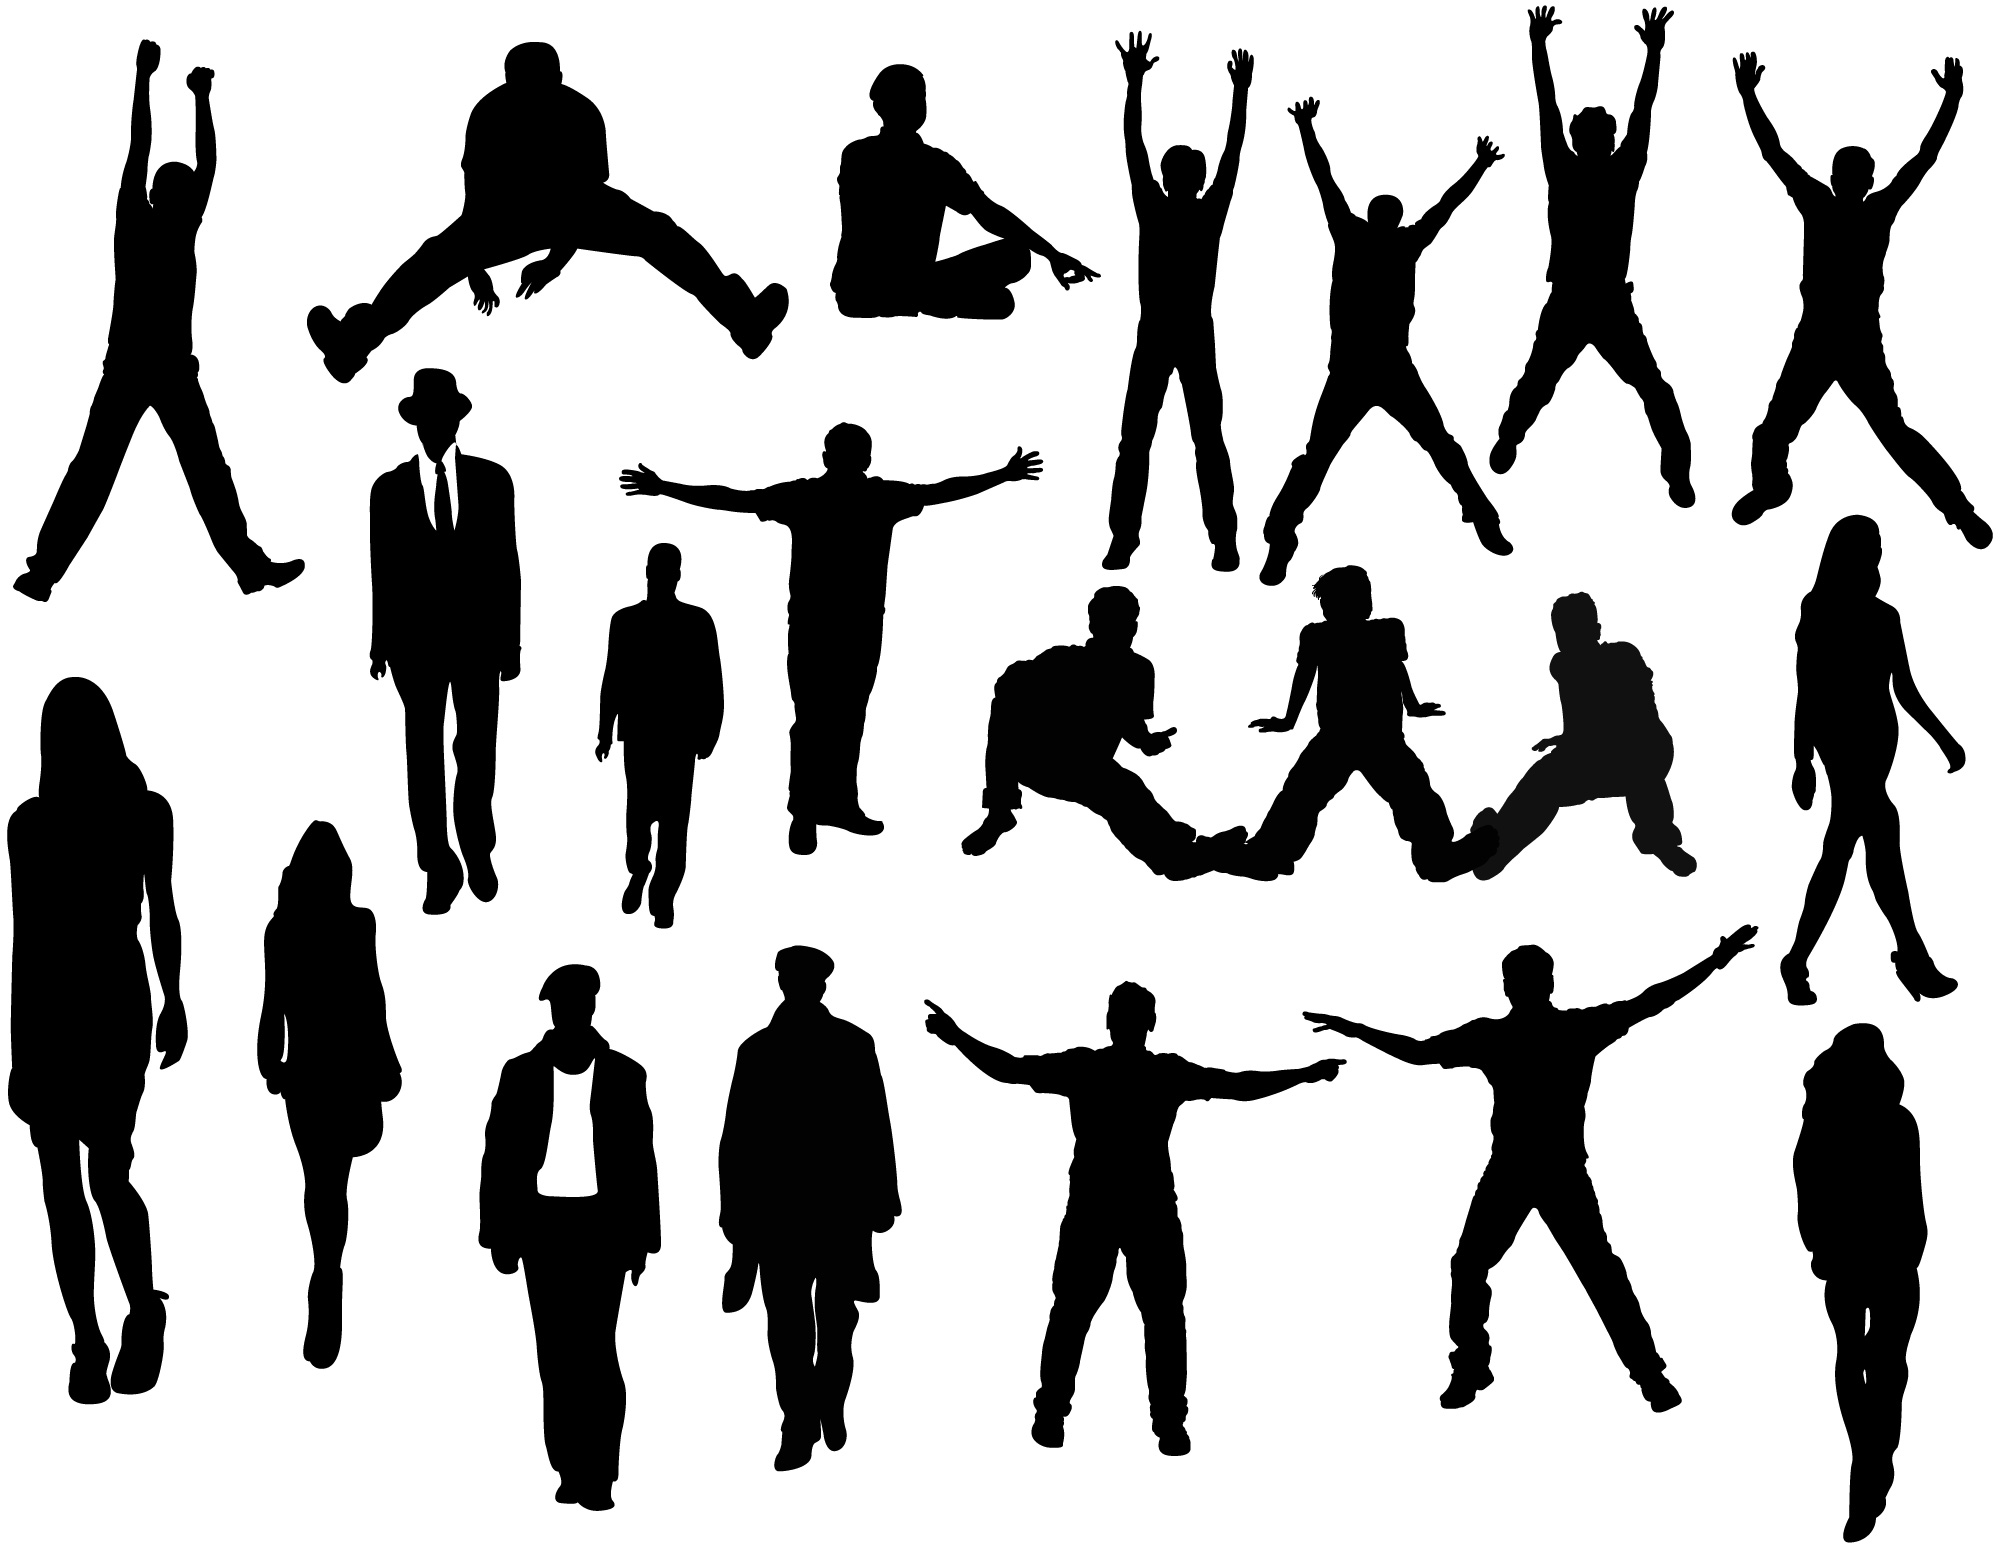 Photoshop People Silhouettes